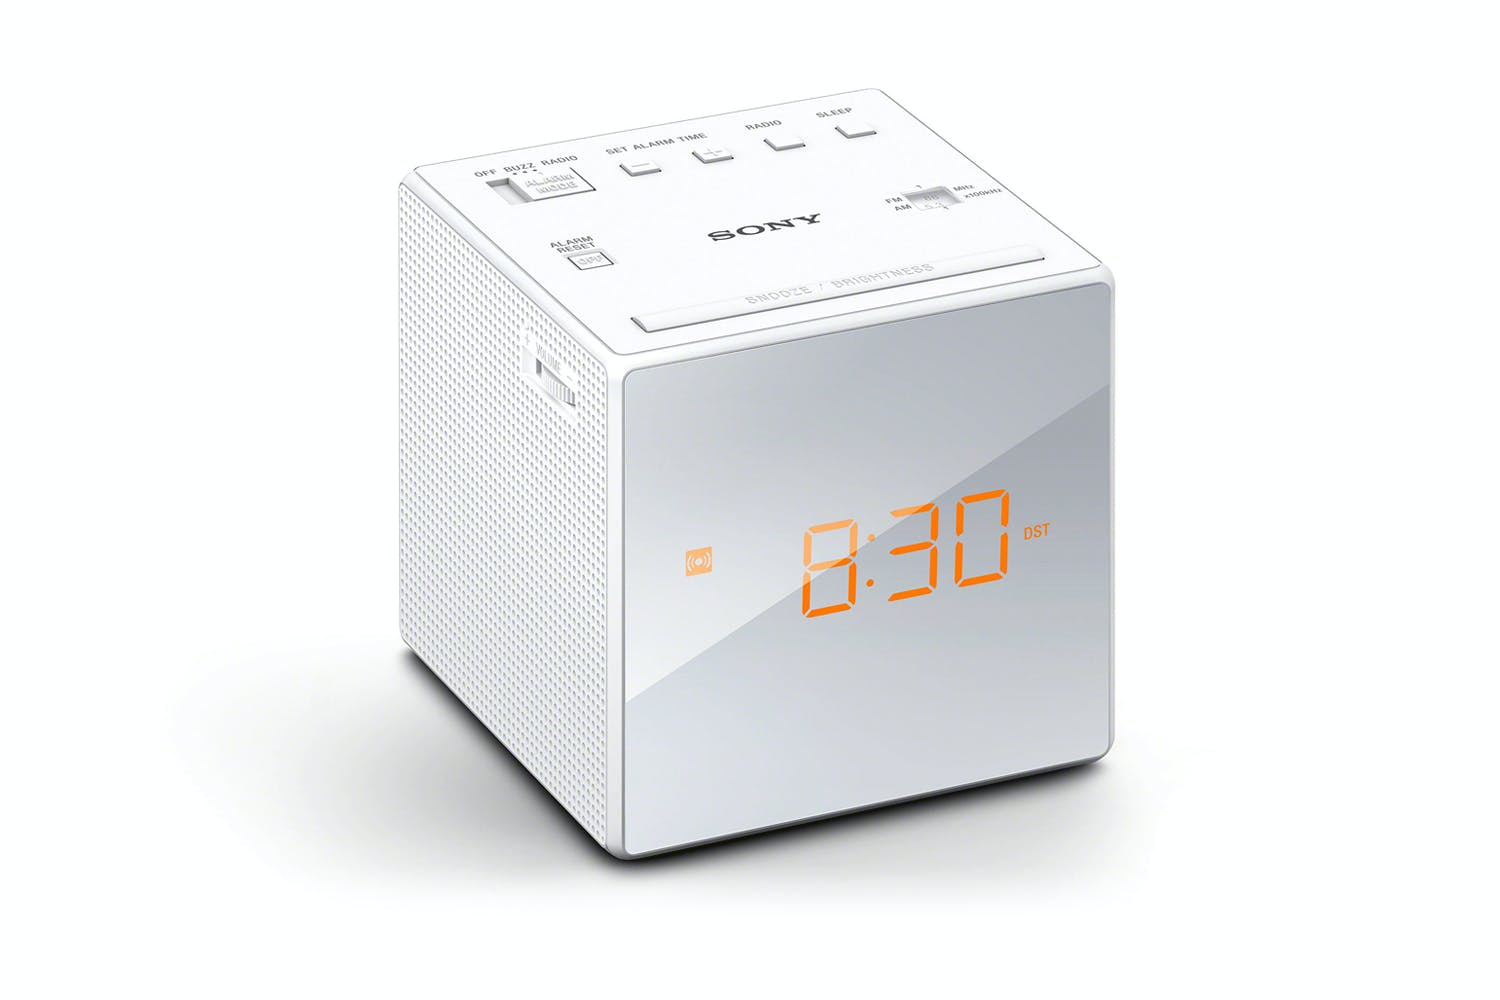 sony alarm clock radio white harvey norman new zealand. Black Bedroom Furniture Sets. Home Design Ideas